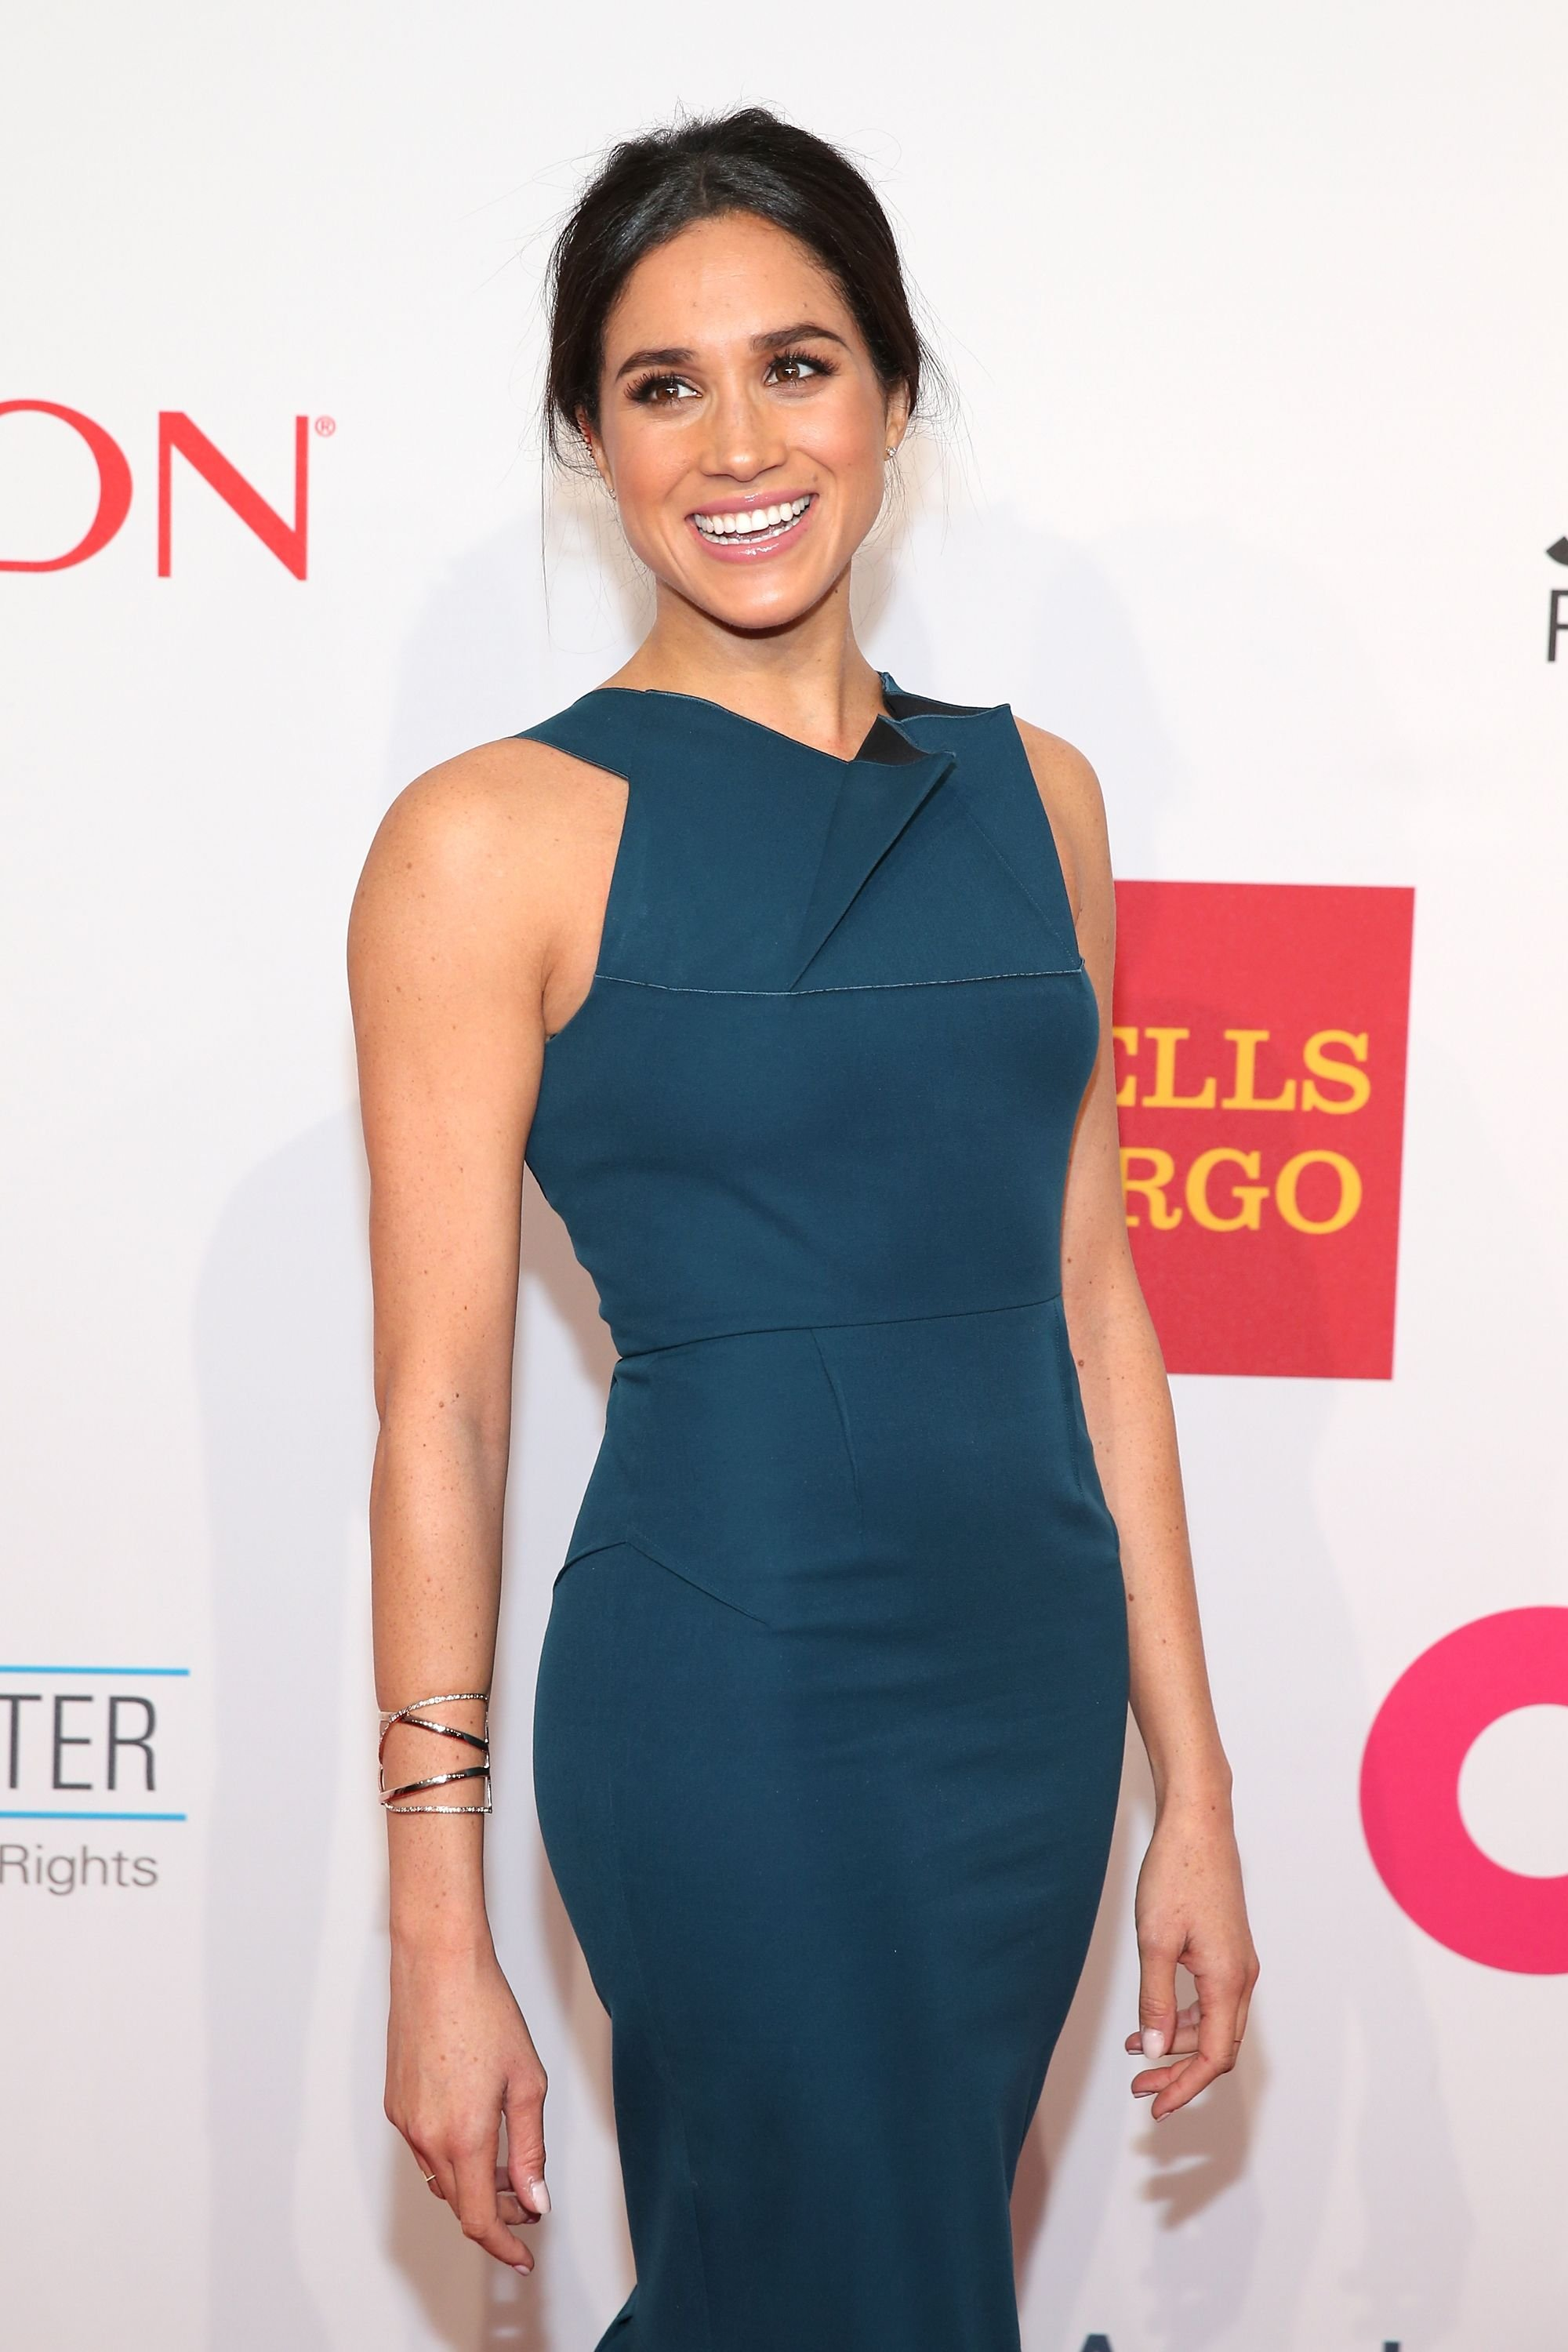 Meghan Markle during the Elton John AIDS Foundation's 13th Annual An Enduring Vision Benefit on October 28, 2014, in New York City. | Source: Getty Images